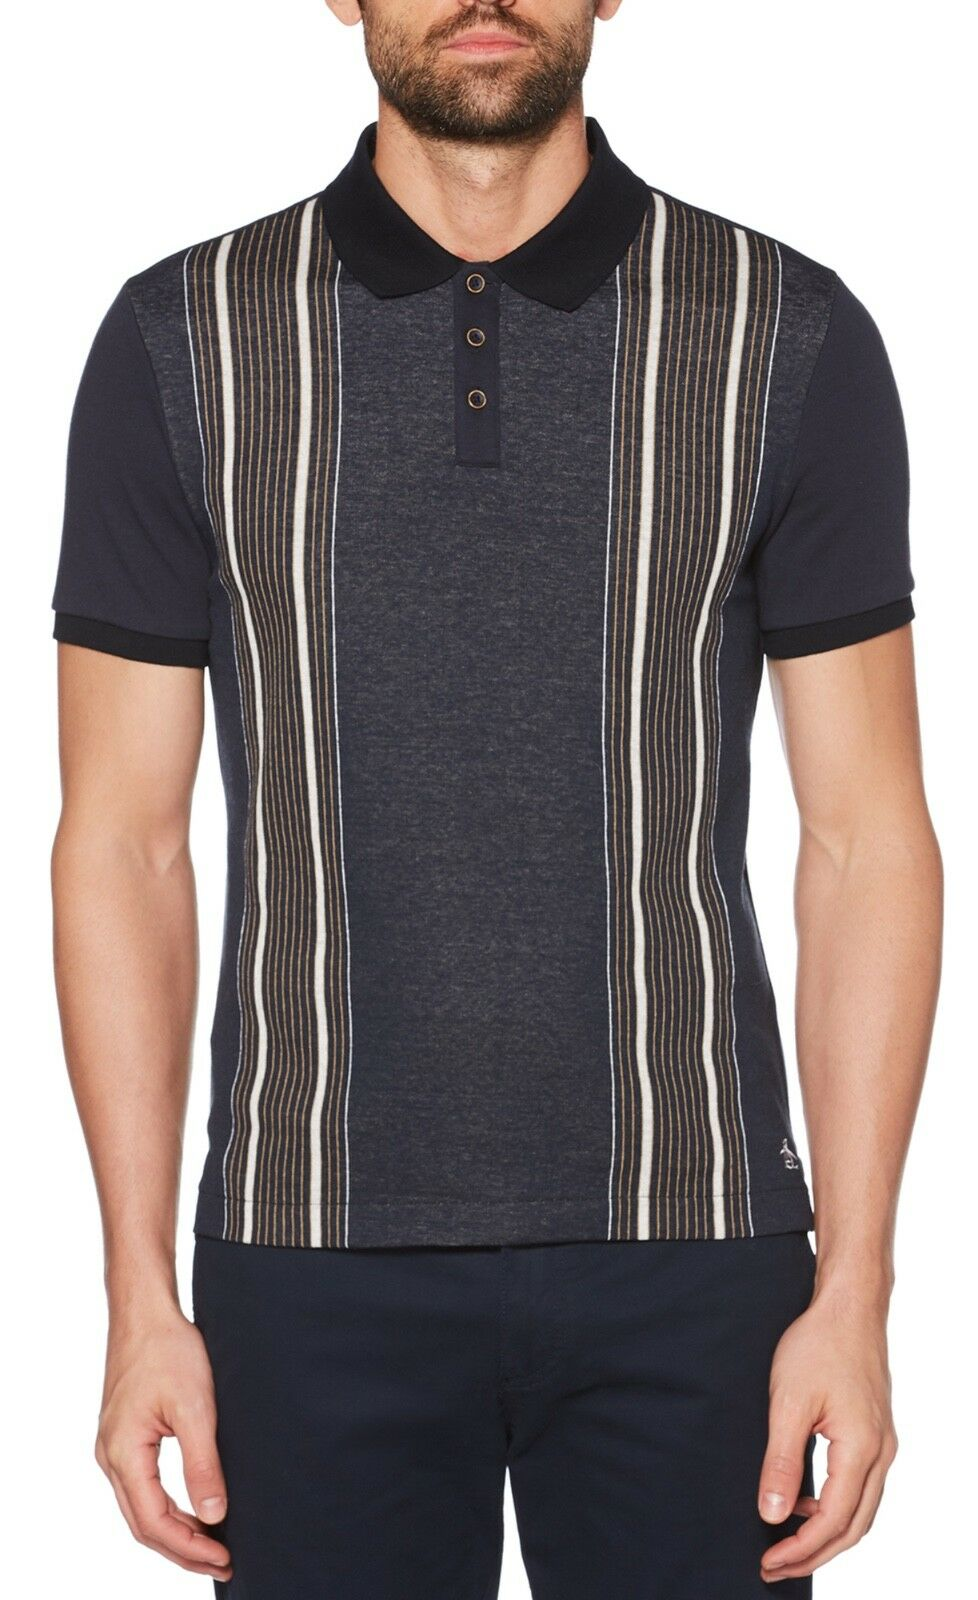 Original Penguin Mens greenical Stripe Casual Cotton Polo Shirt Raised Piqué Top